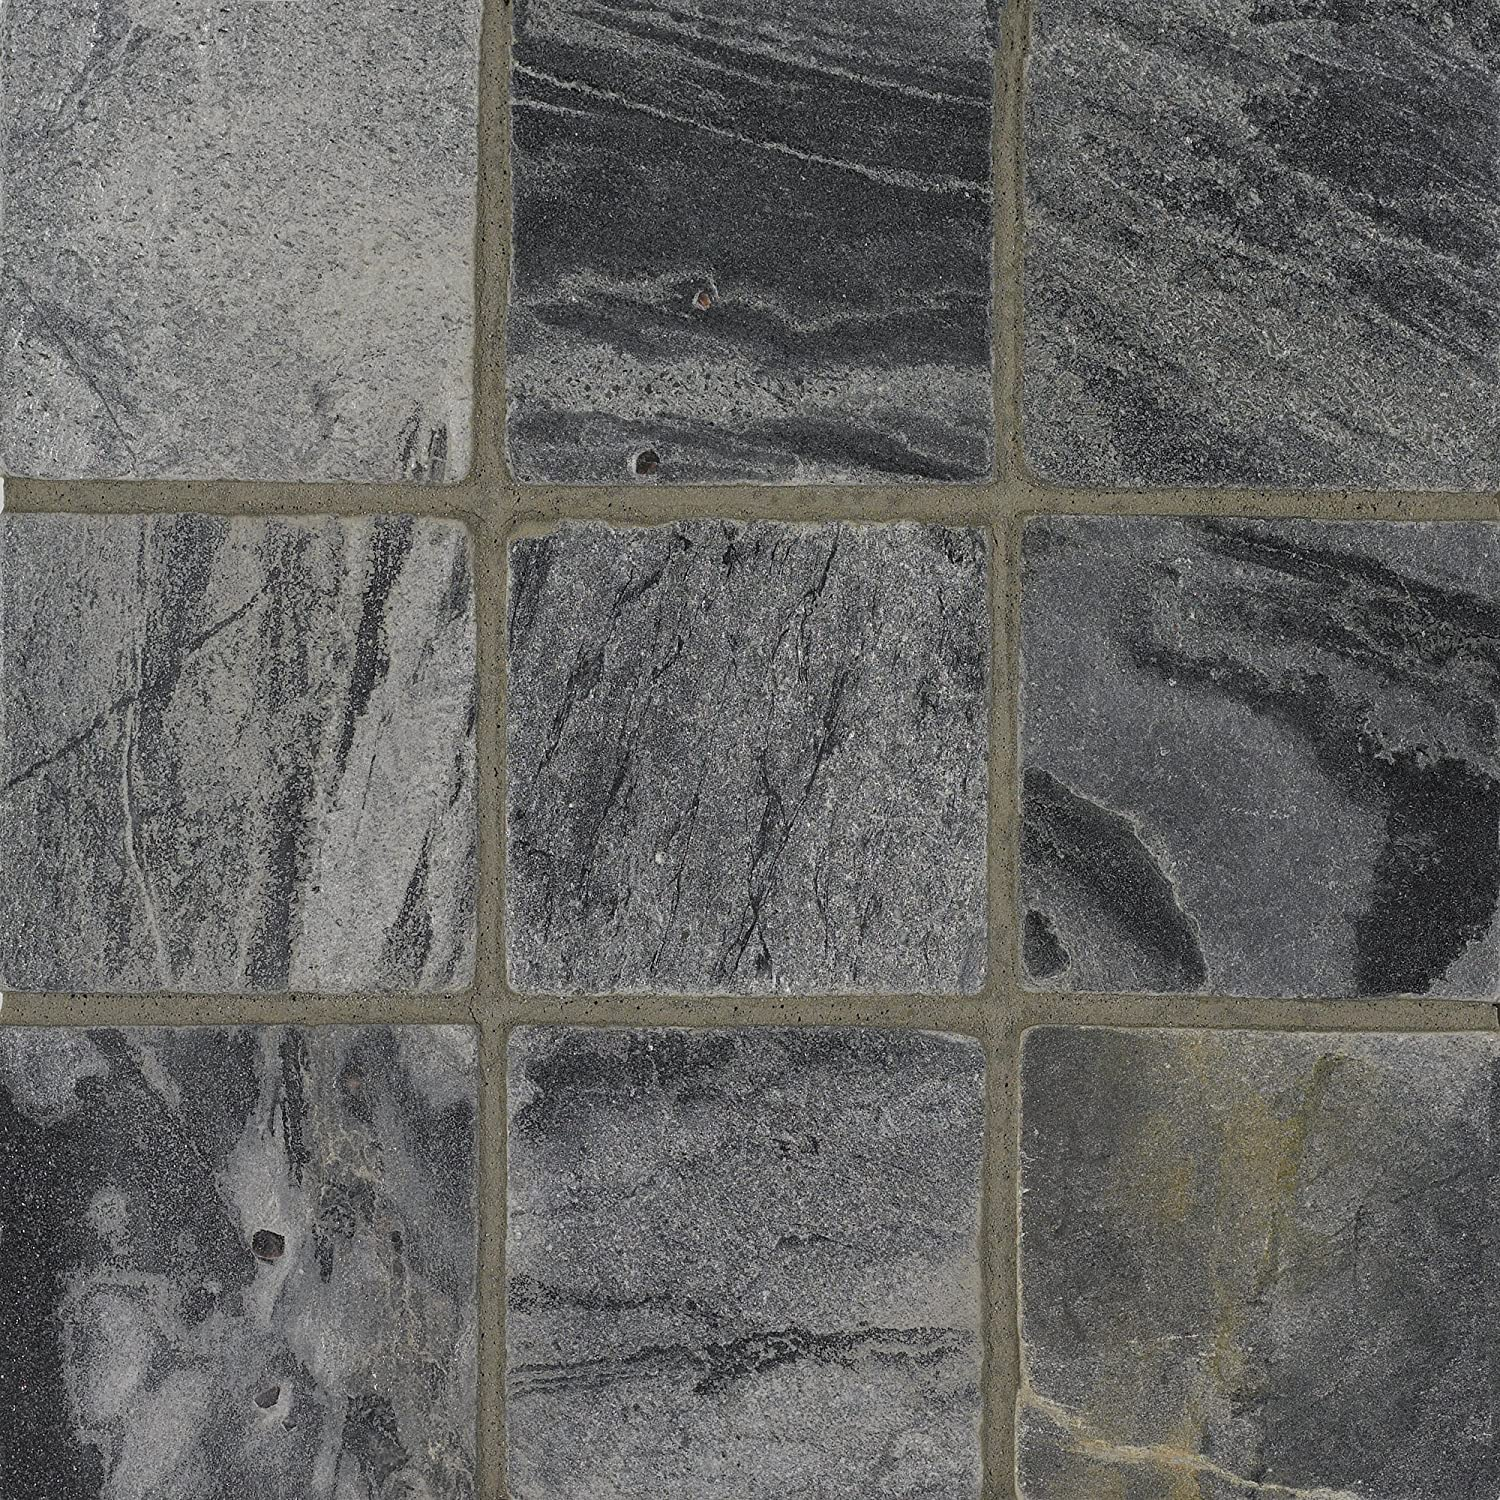 Arizona Tile 4 by 4-Inch Tumbled Quartzite Tile, Ostrich Grey, 6 ...